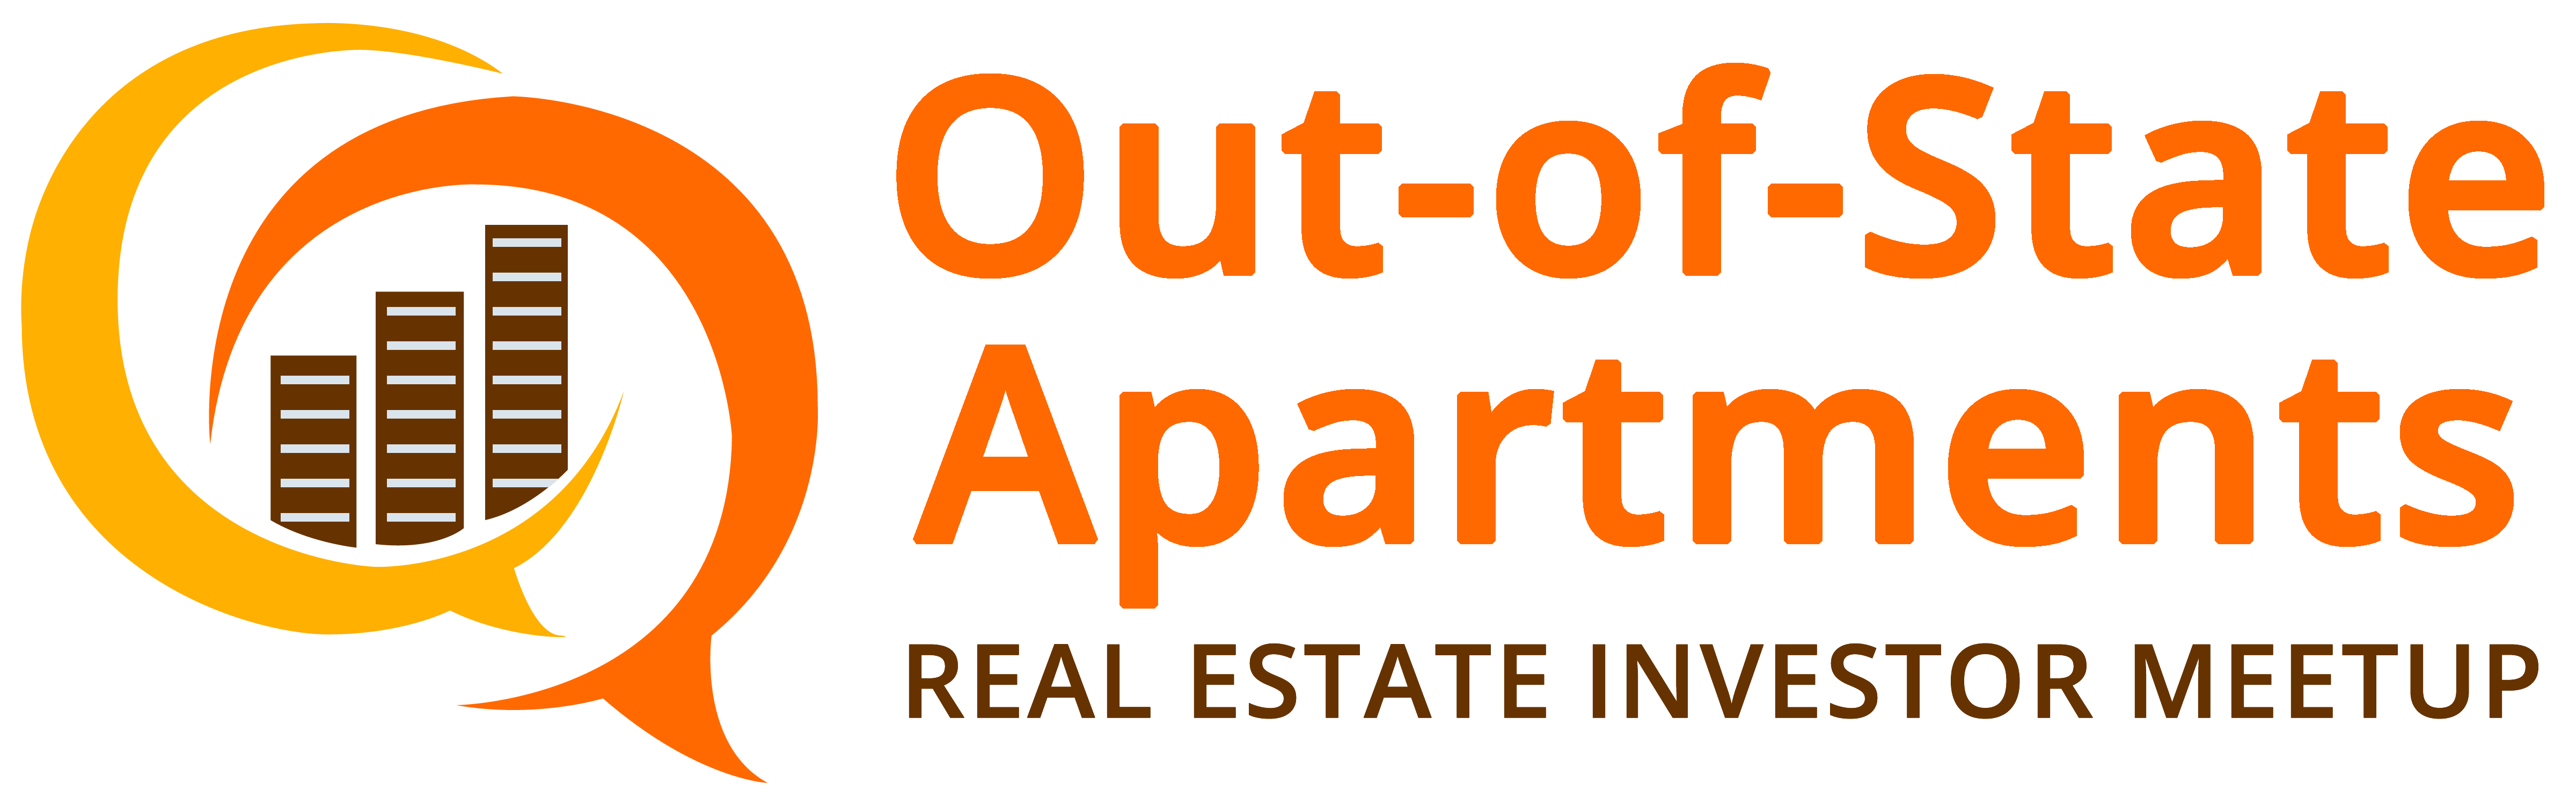 Out-of-State Apartments Real Estate Investor Meetups